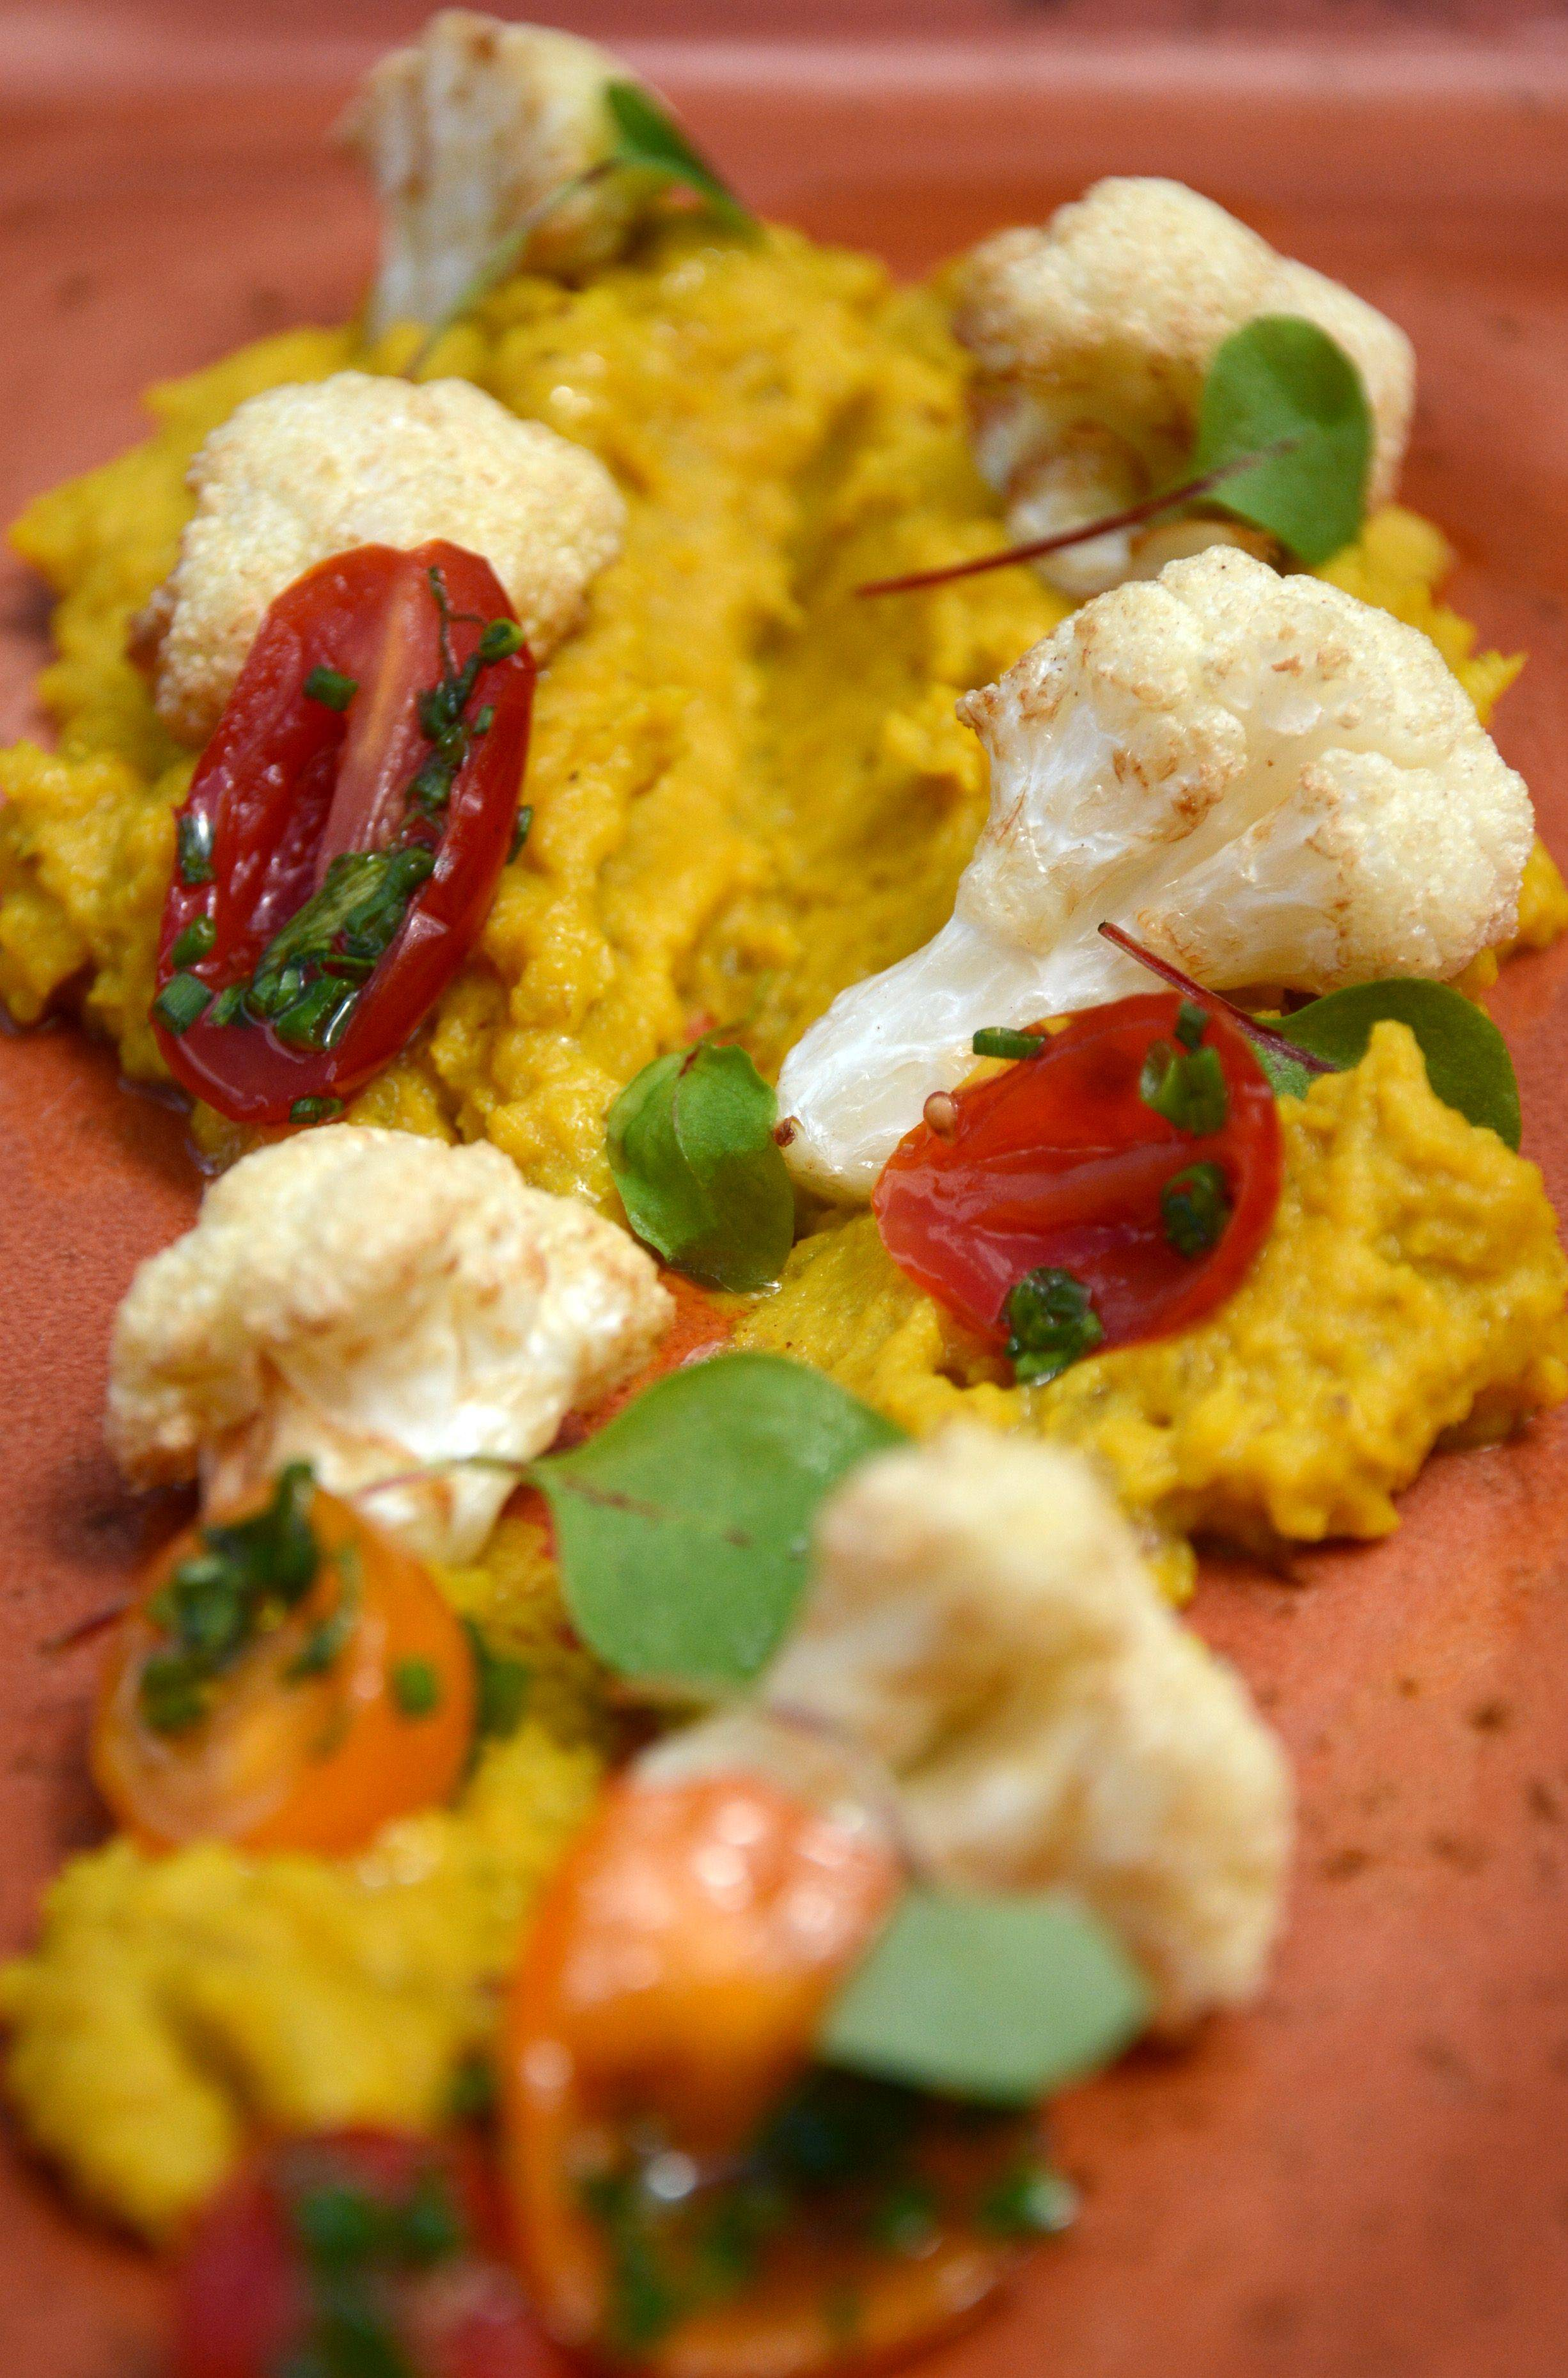 Unearthing the beauty of cauliflower